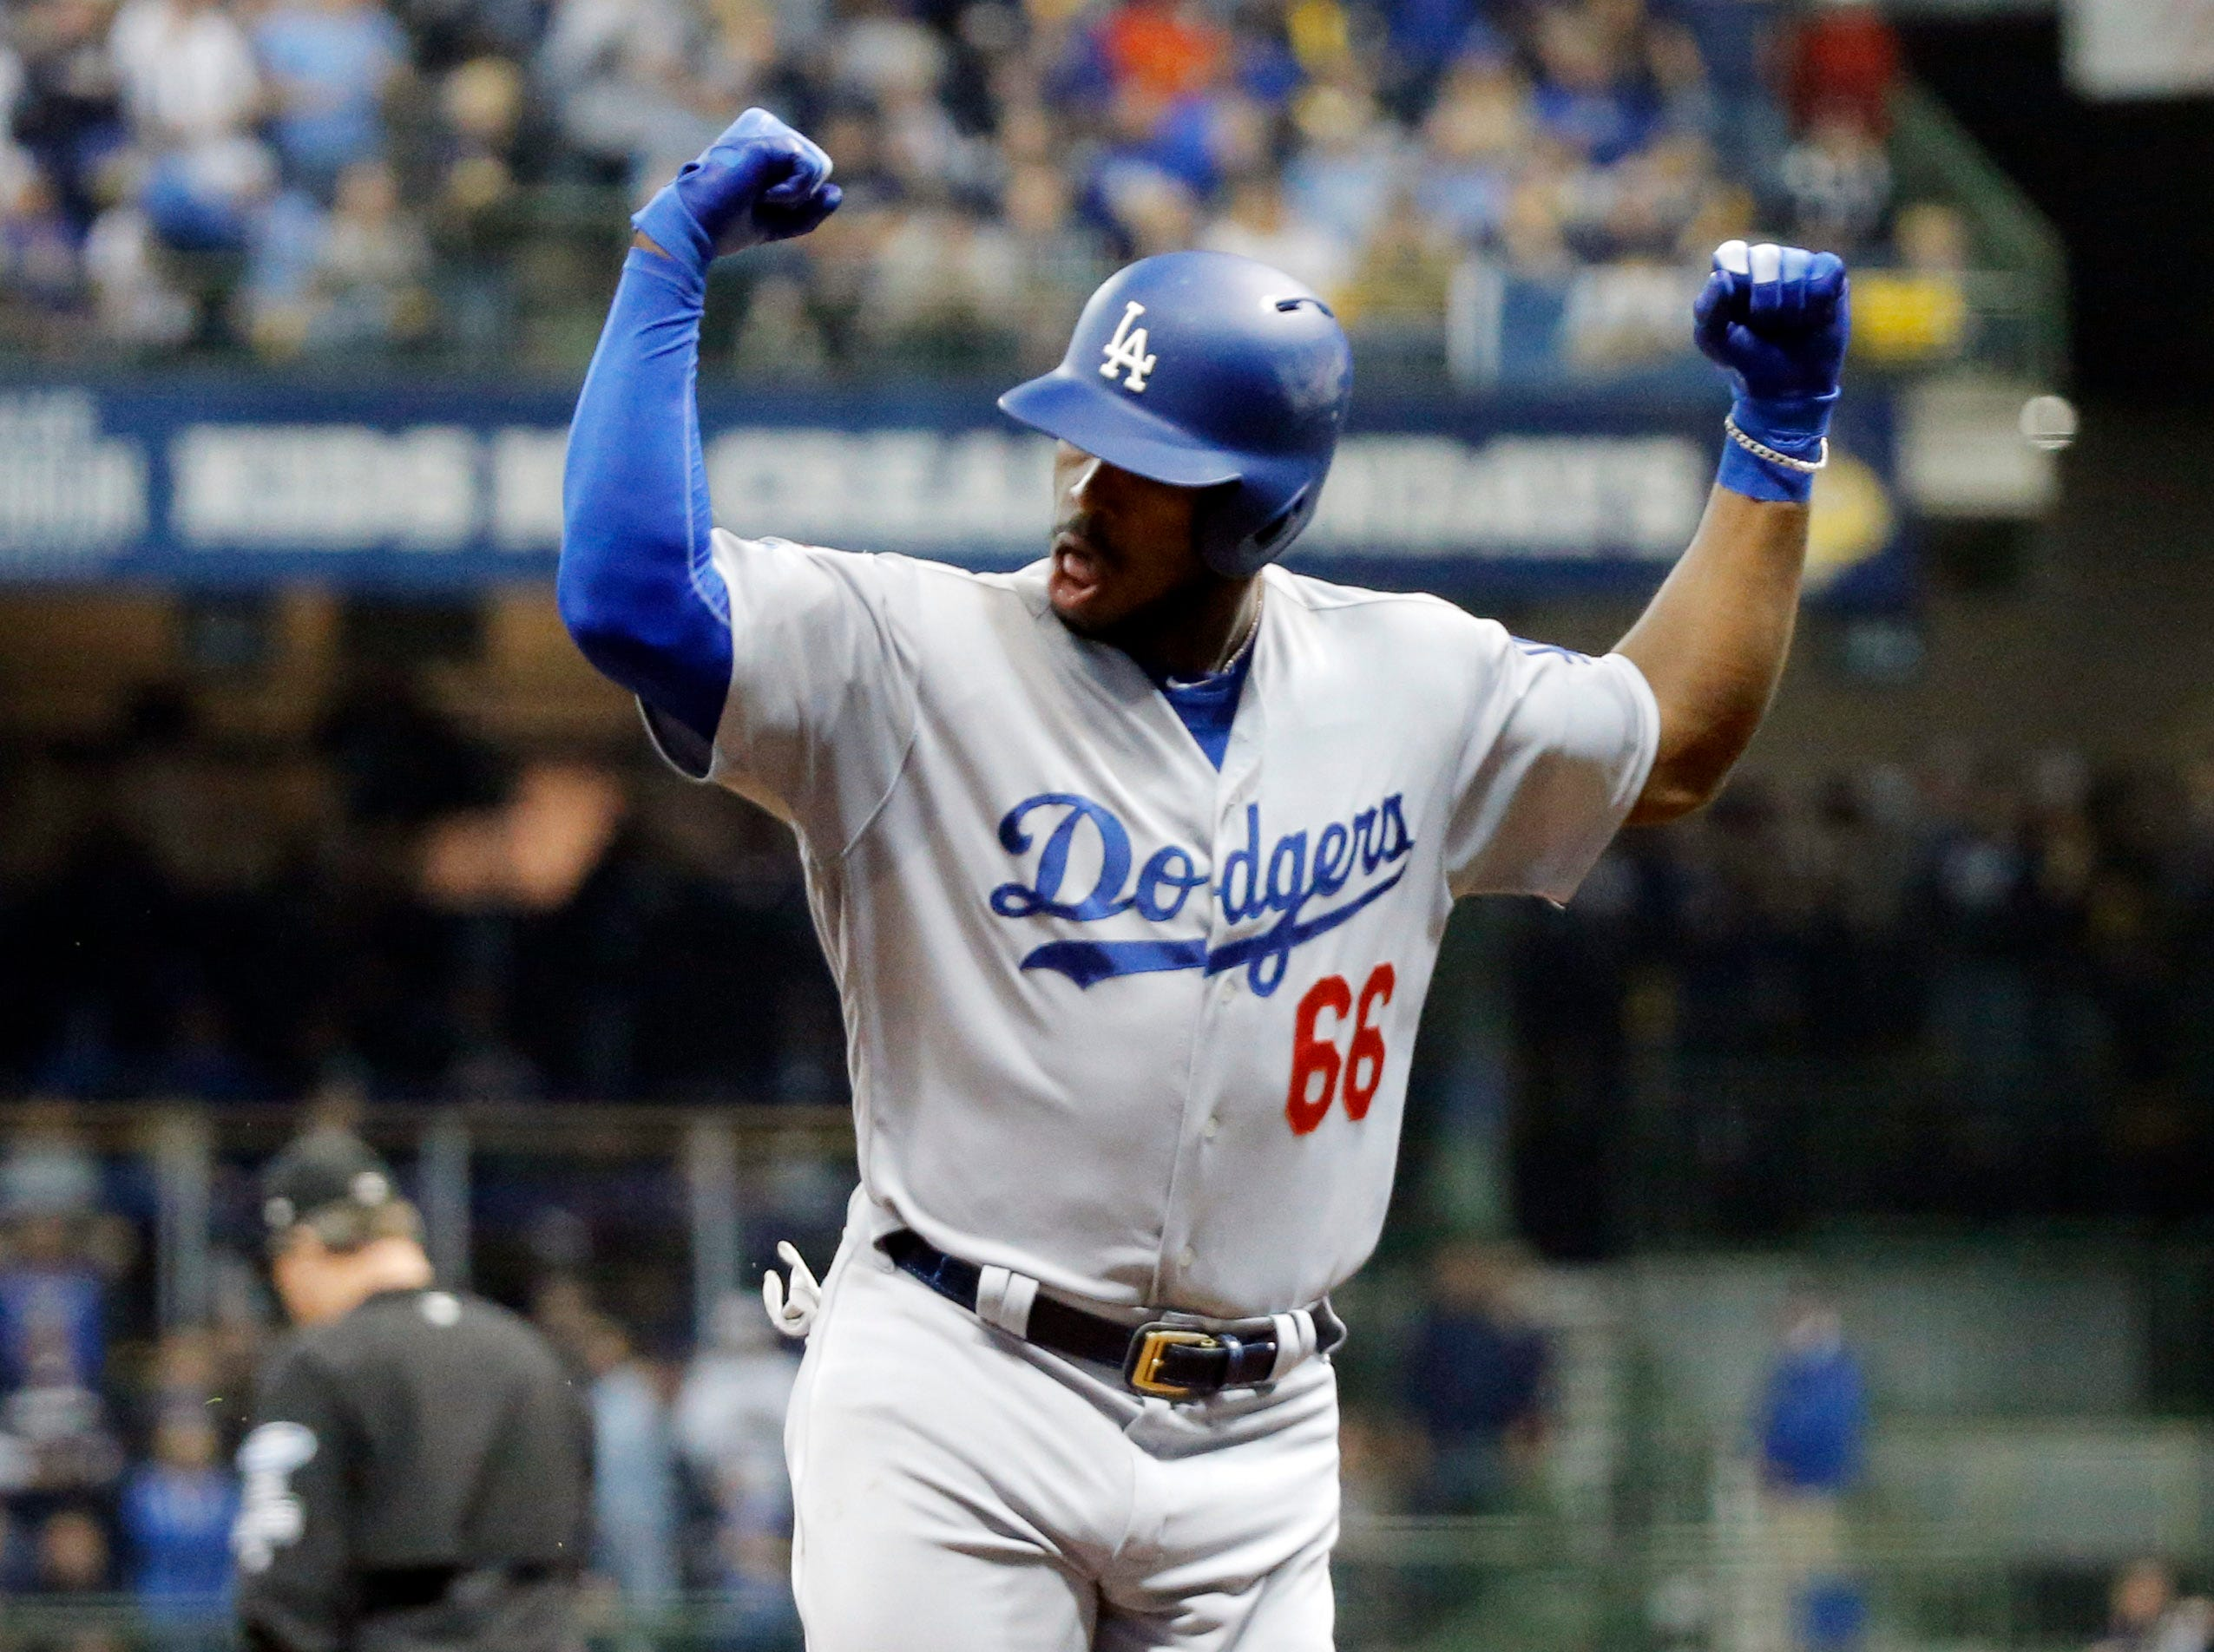 NLCS Game 7: Yasiel Puig celebrates his home run in the sixth inning.